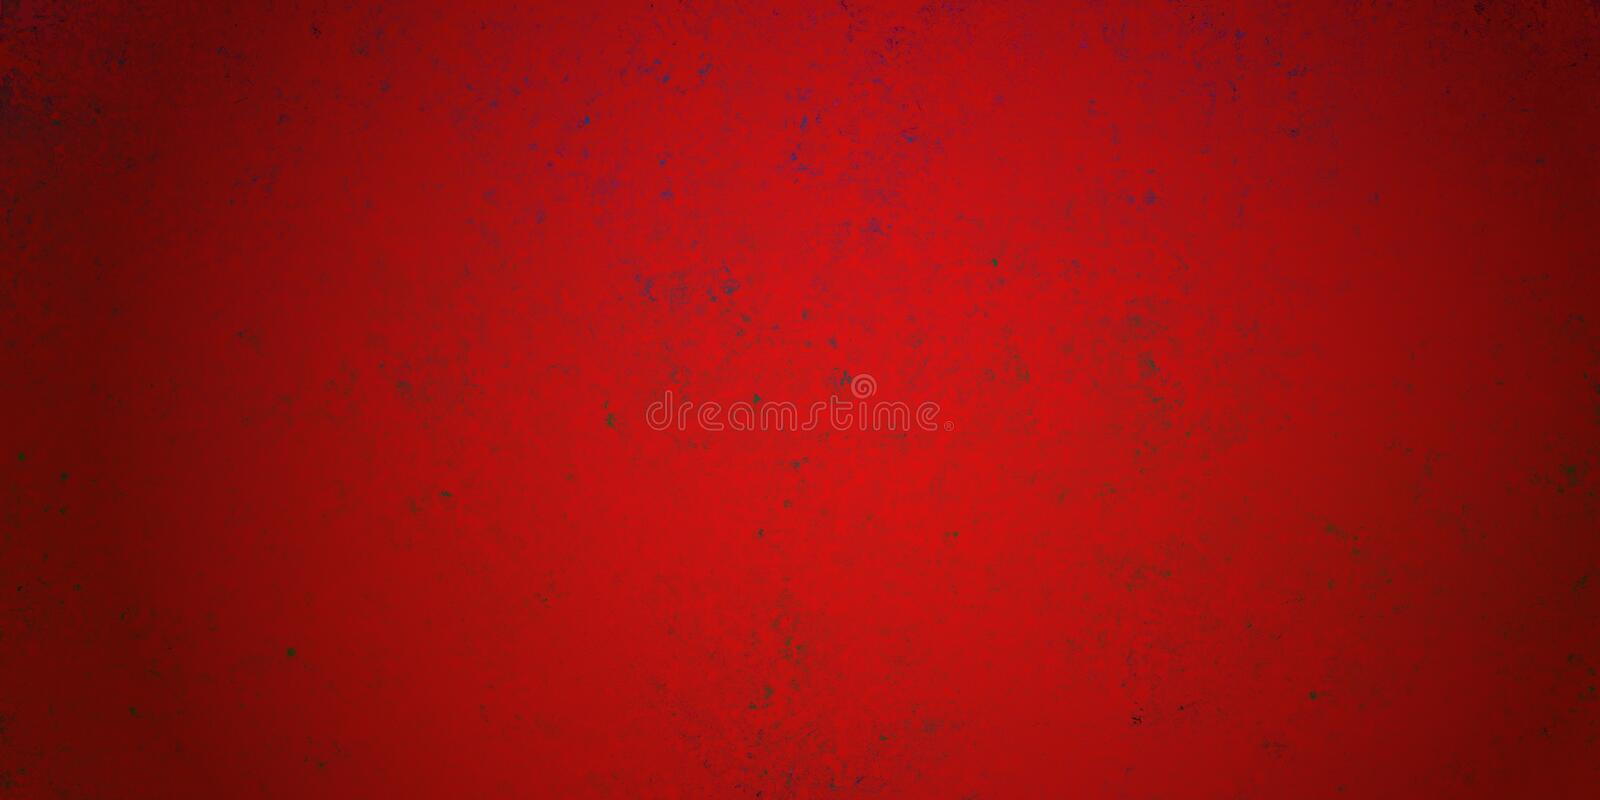 Elegant red Christmas background with grunge distressed paint texture in old vintage design with black vignette border and dark sp royalty free stock photos